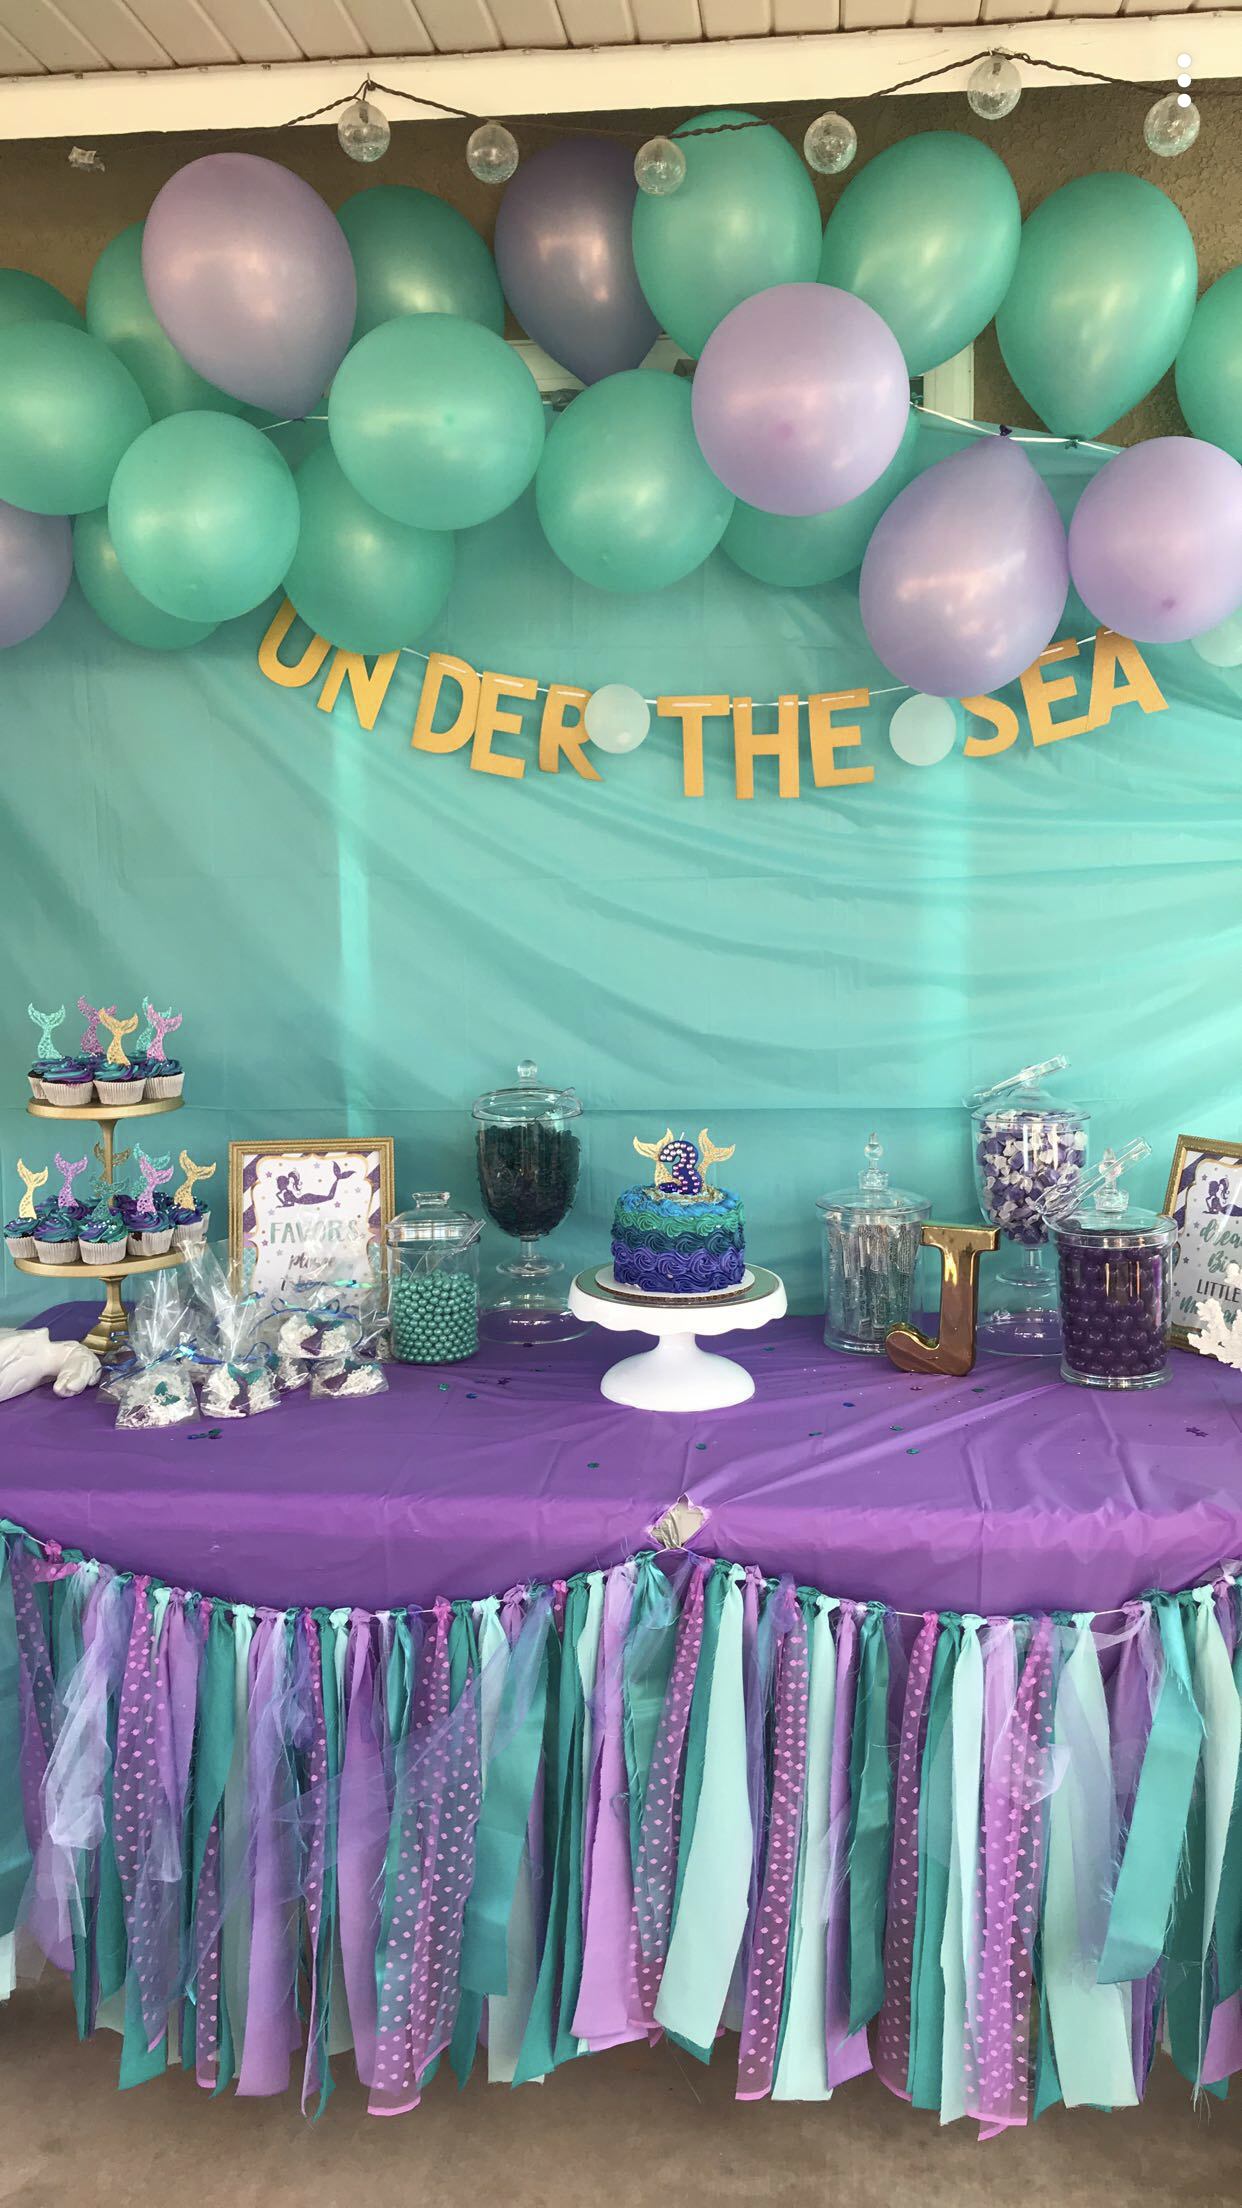 Under The Sea Mermaid Birthday Sweets Table